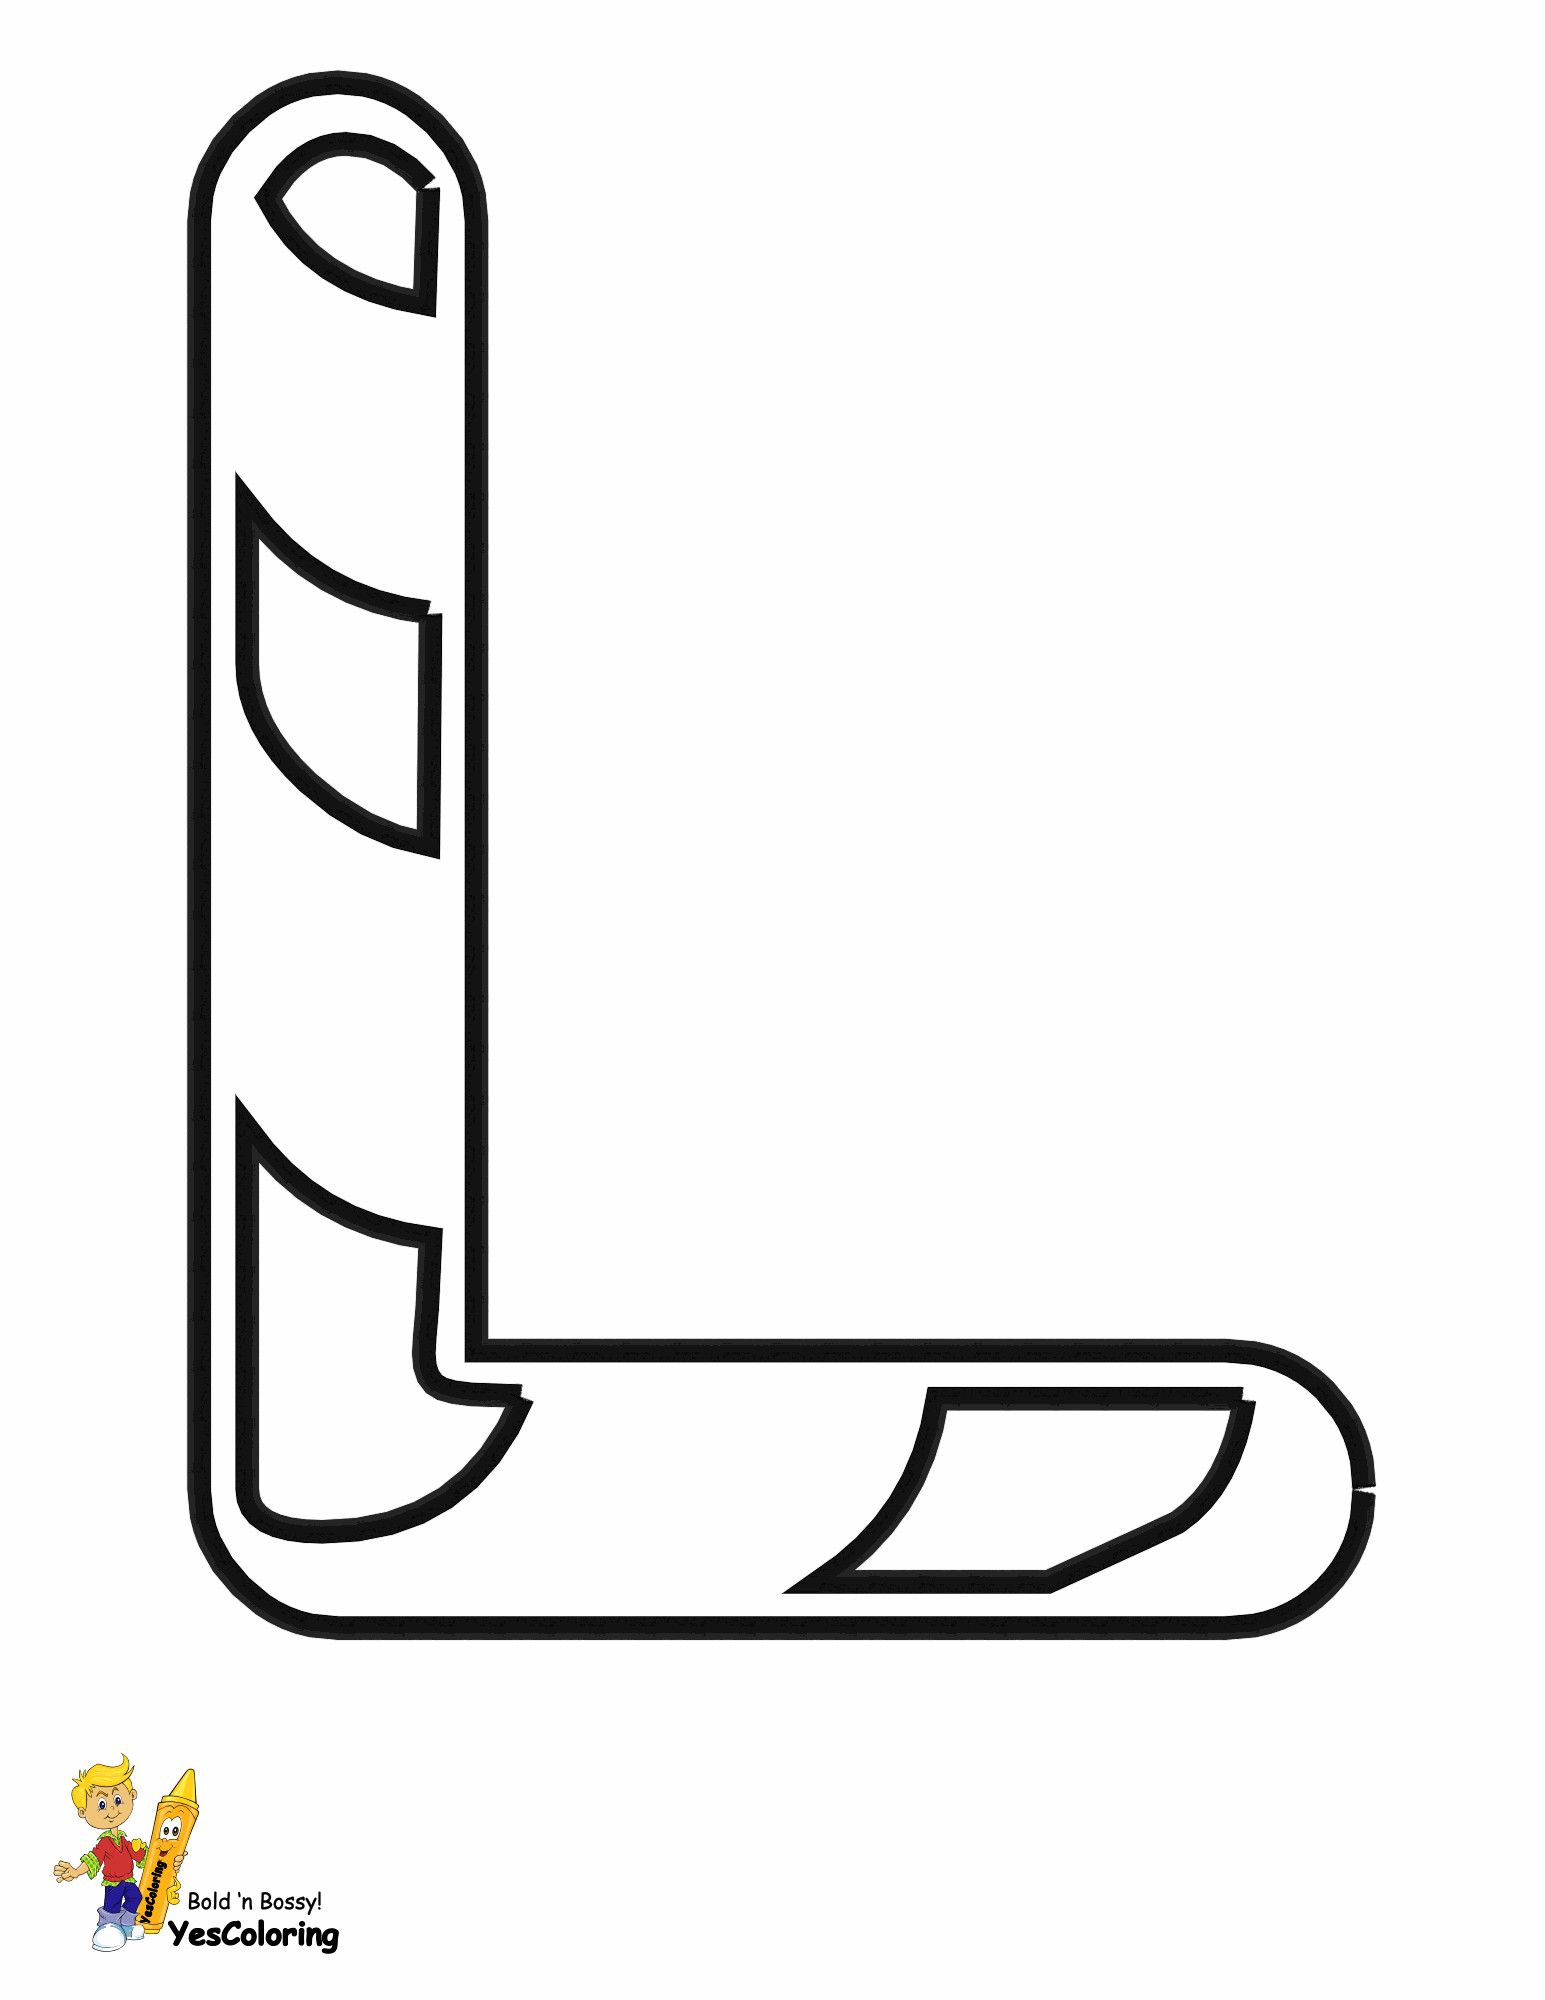 Letter L Coloring Pages New Coloring Pages Sheet Christmas Candy Cane Alphabet Abc Coloring Pages Flag Coloring Pages Christmas Coloring Pages